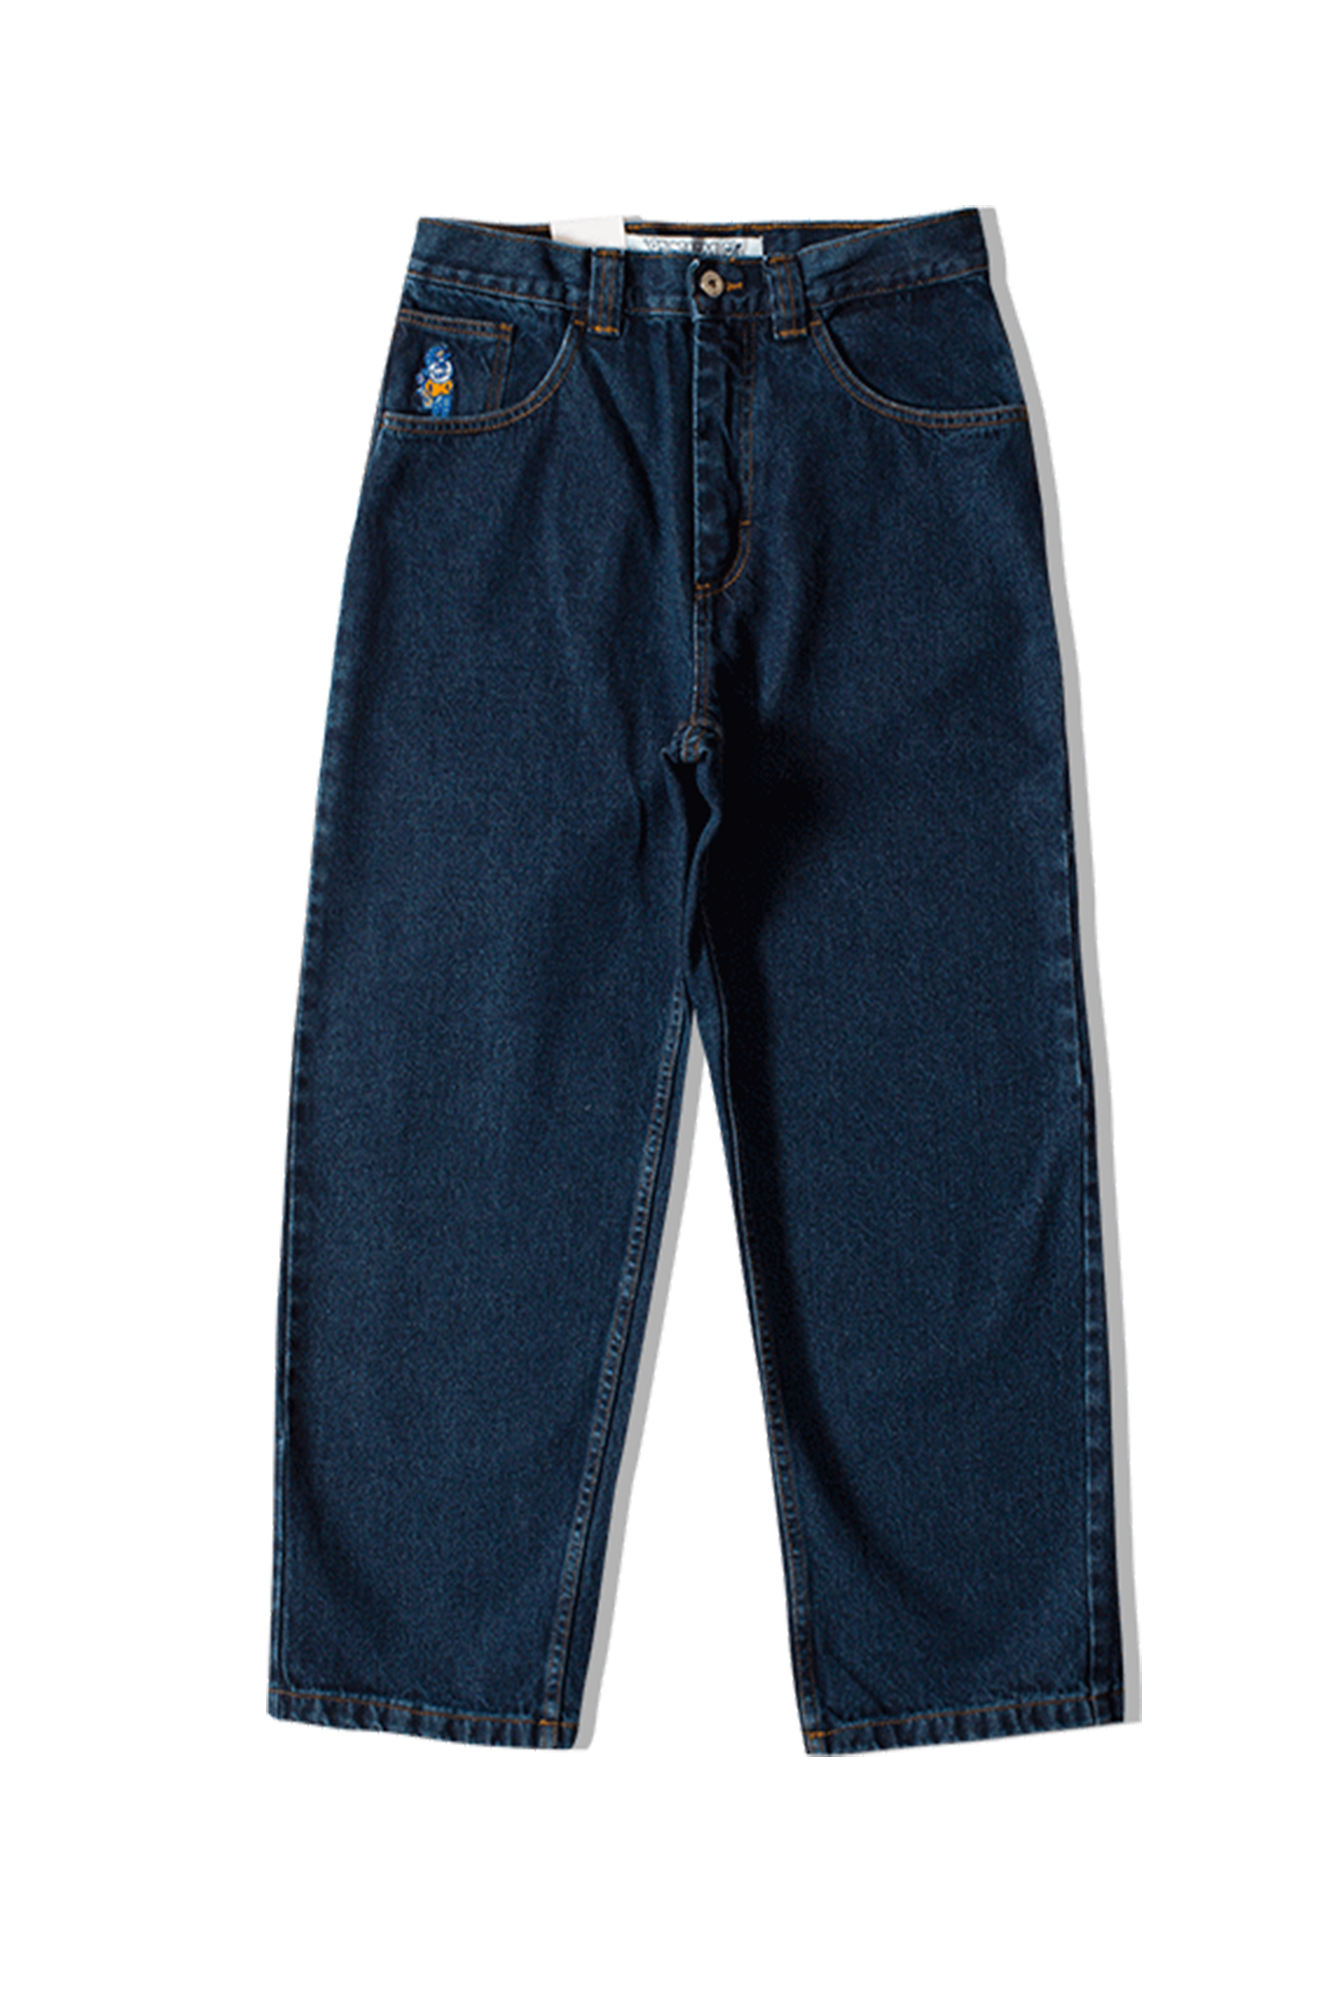 Polar Denim 93 Denim Blue POL-93DENI#30#DRKBLU#28 - One Block Down